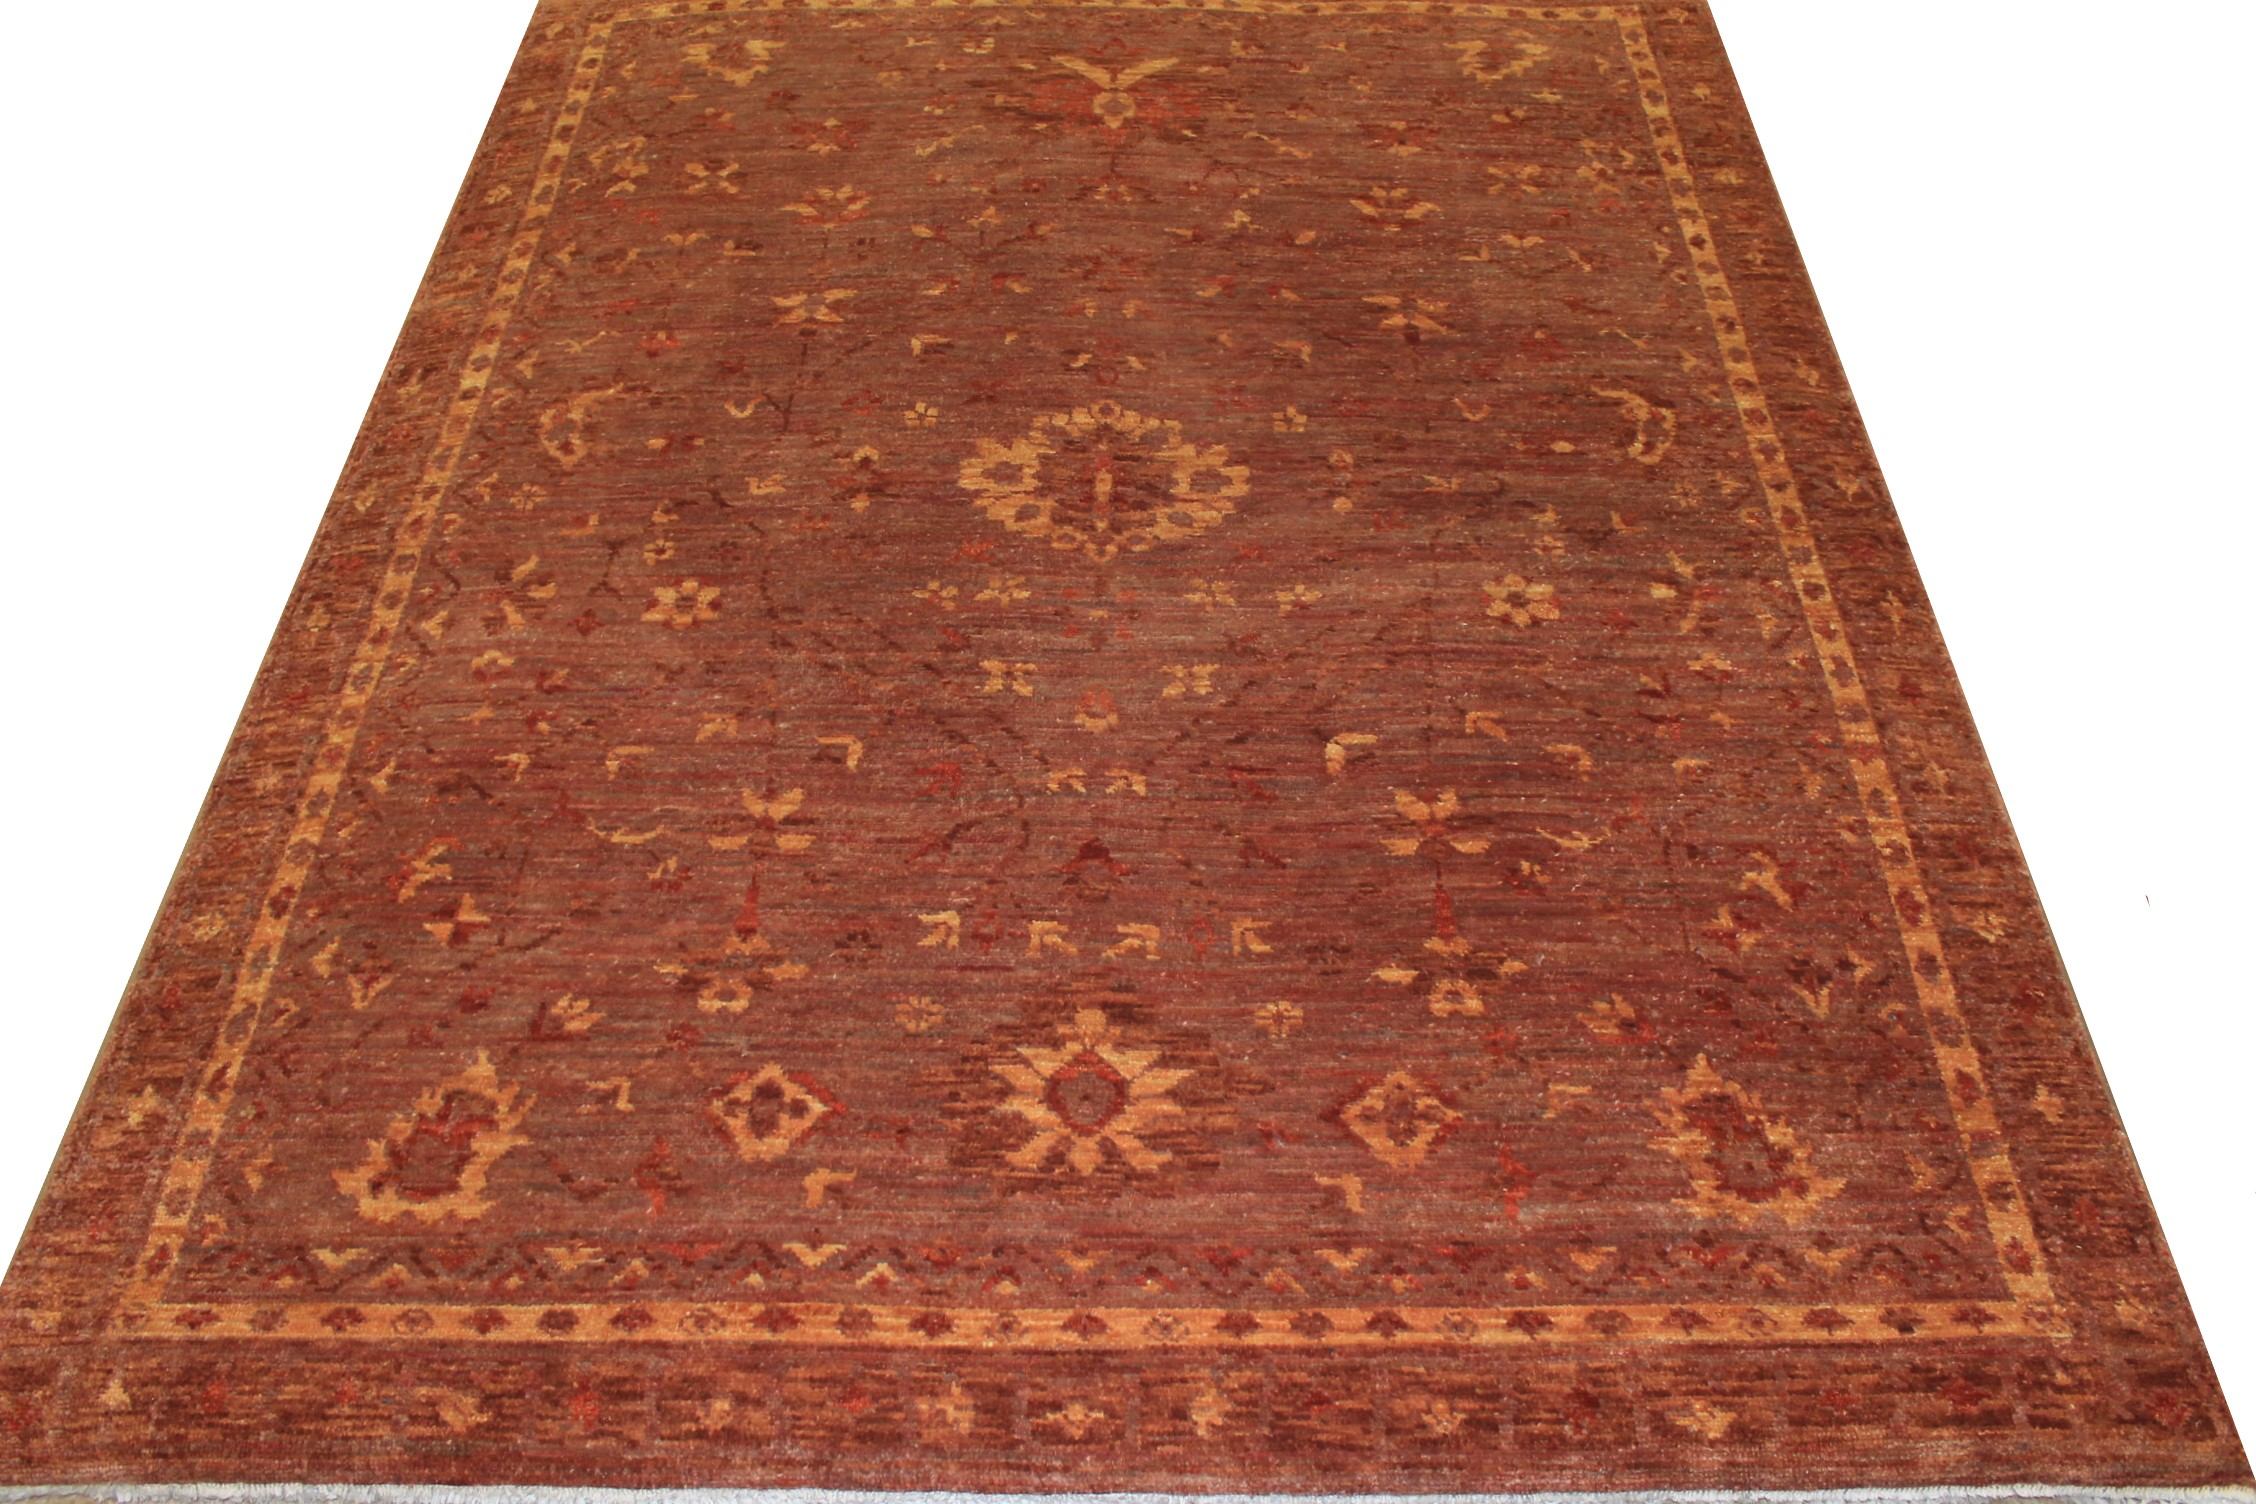 8x10 Oushak Hand Knotted Wool Area Rug - MR18029